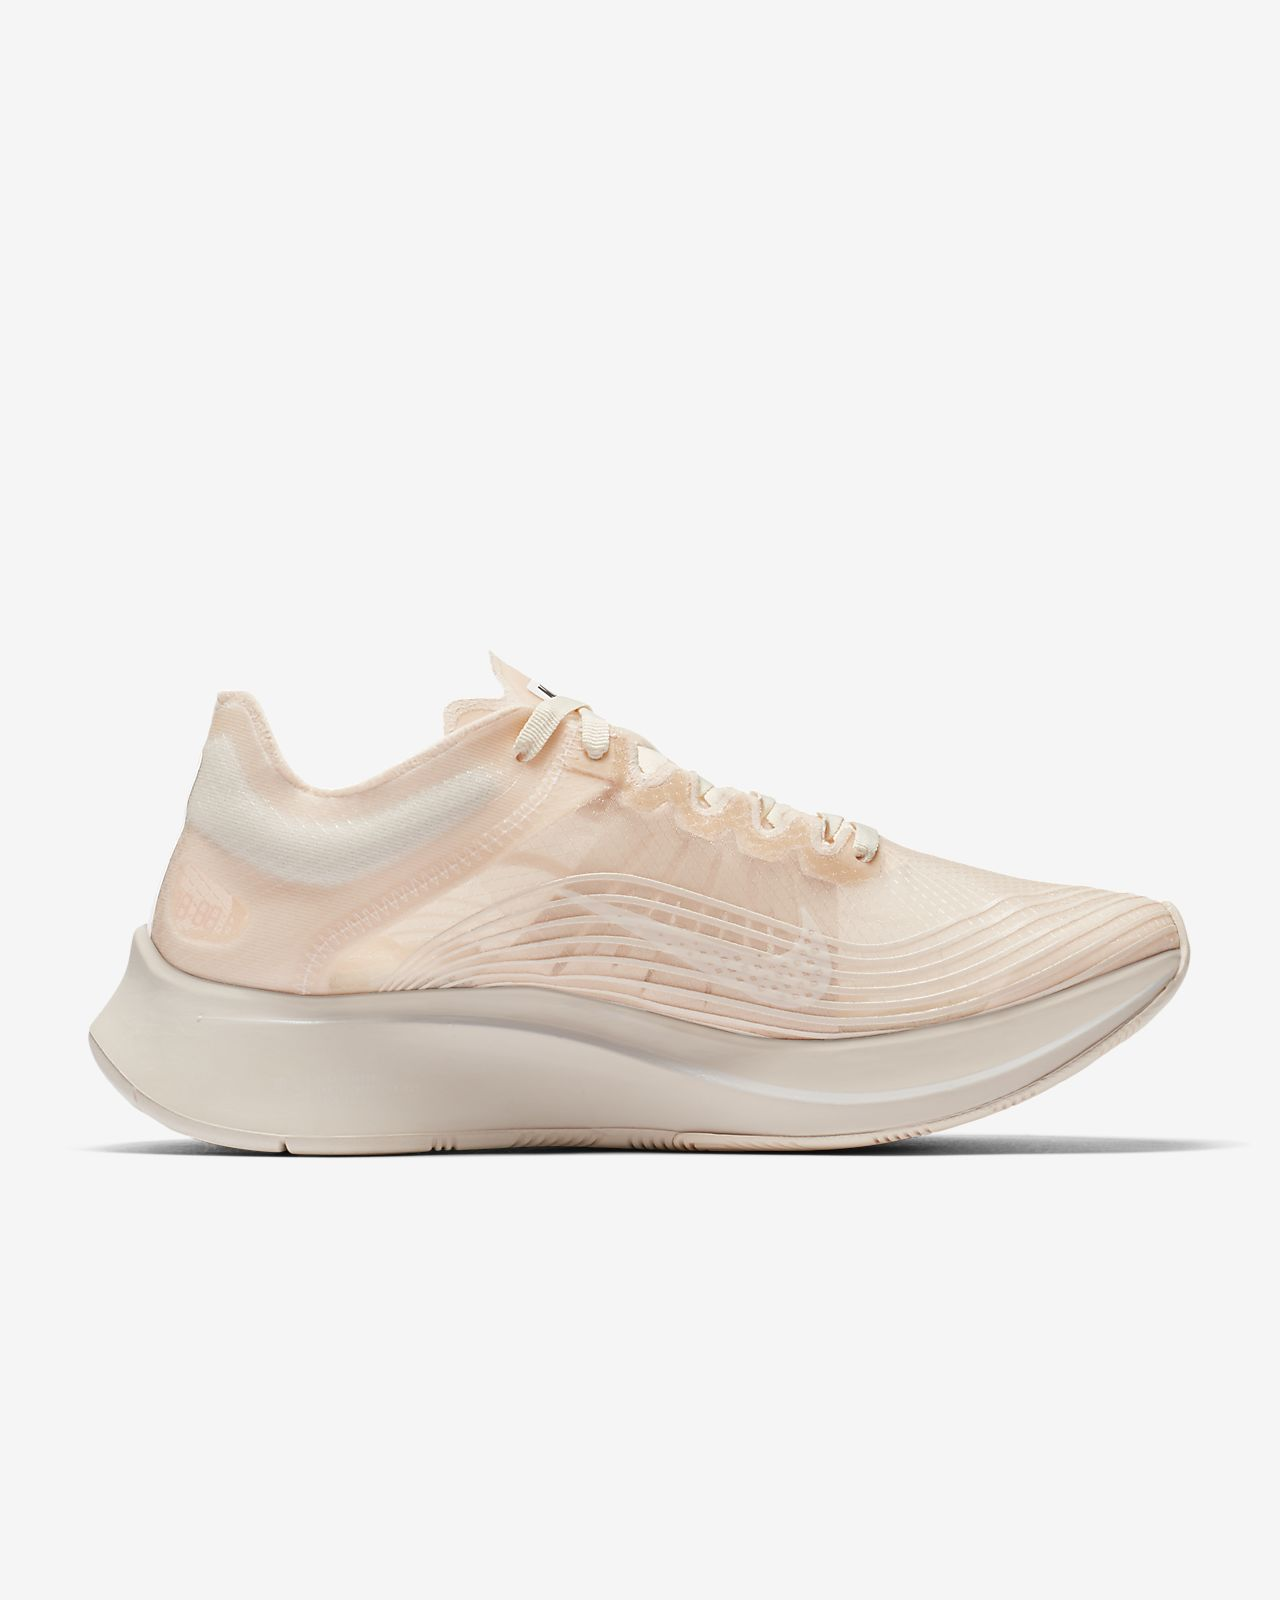 b753b77369 Nike Zoom Fly SP Women s Running Shoe. Nike.com CA